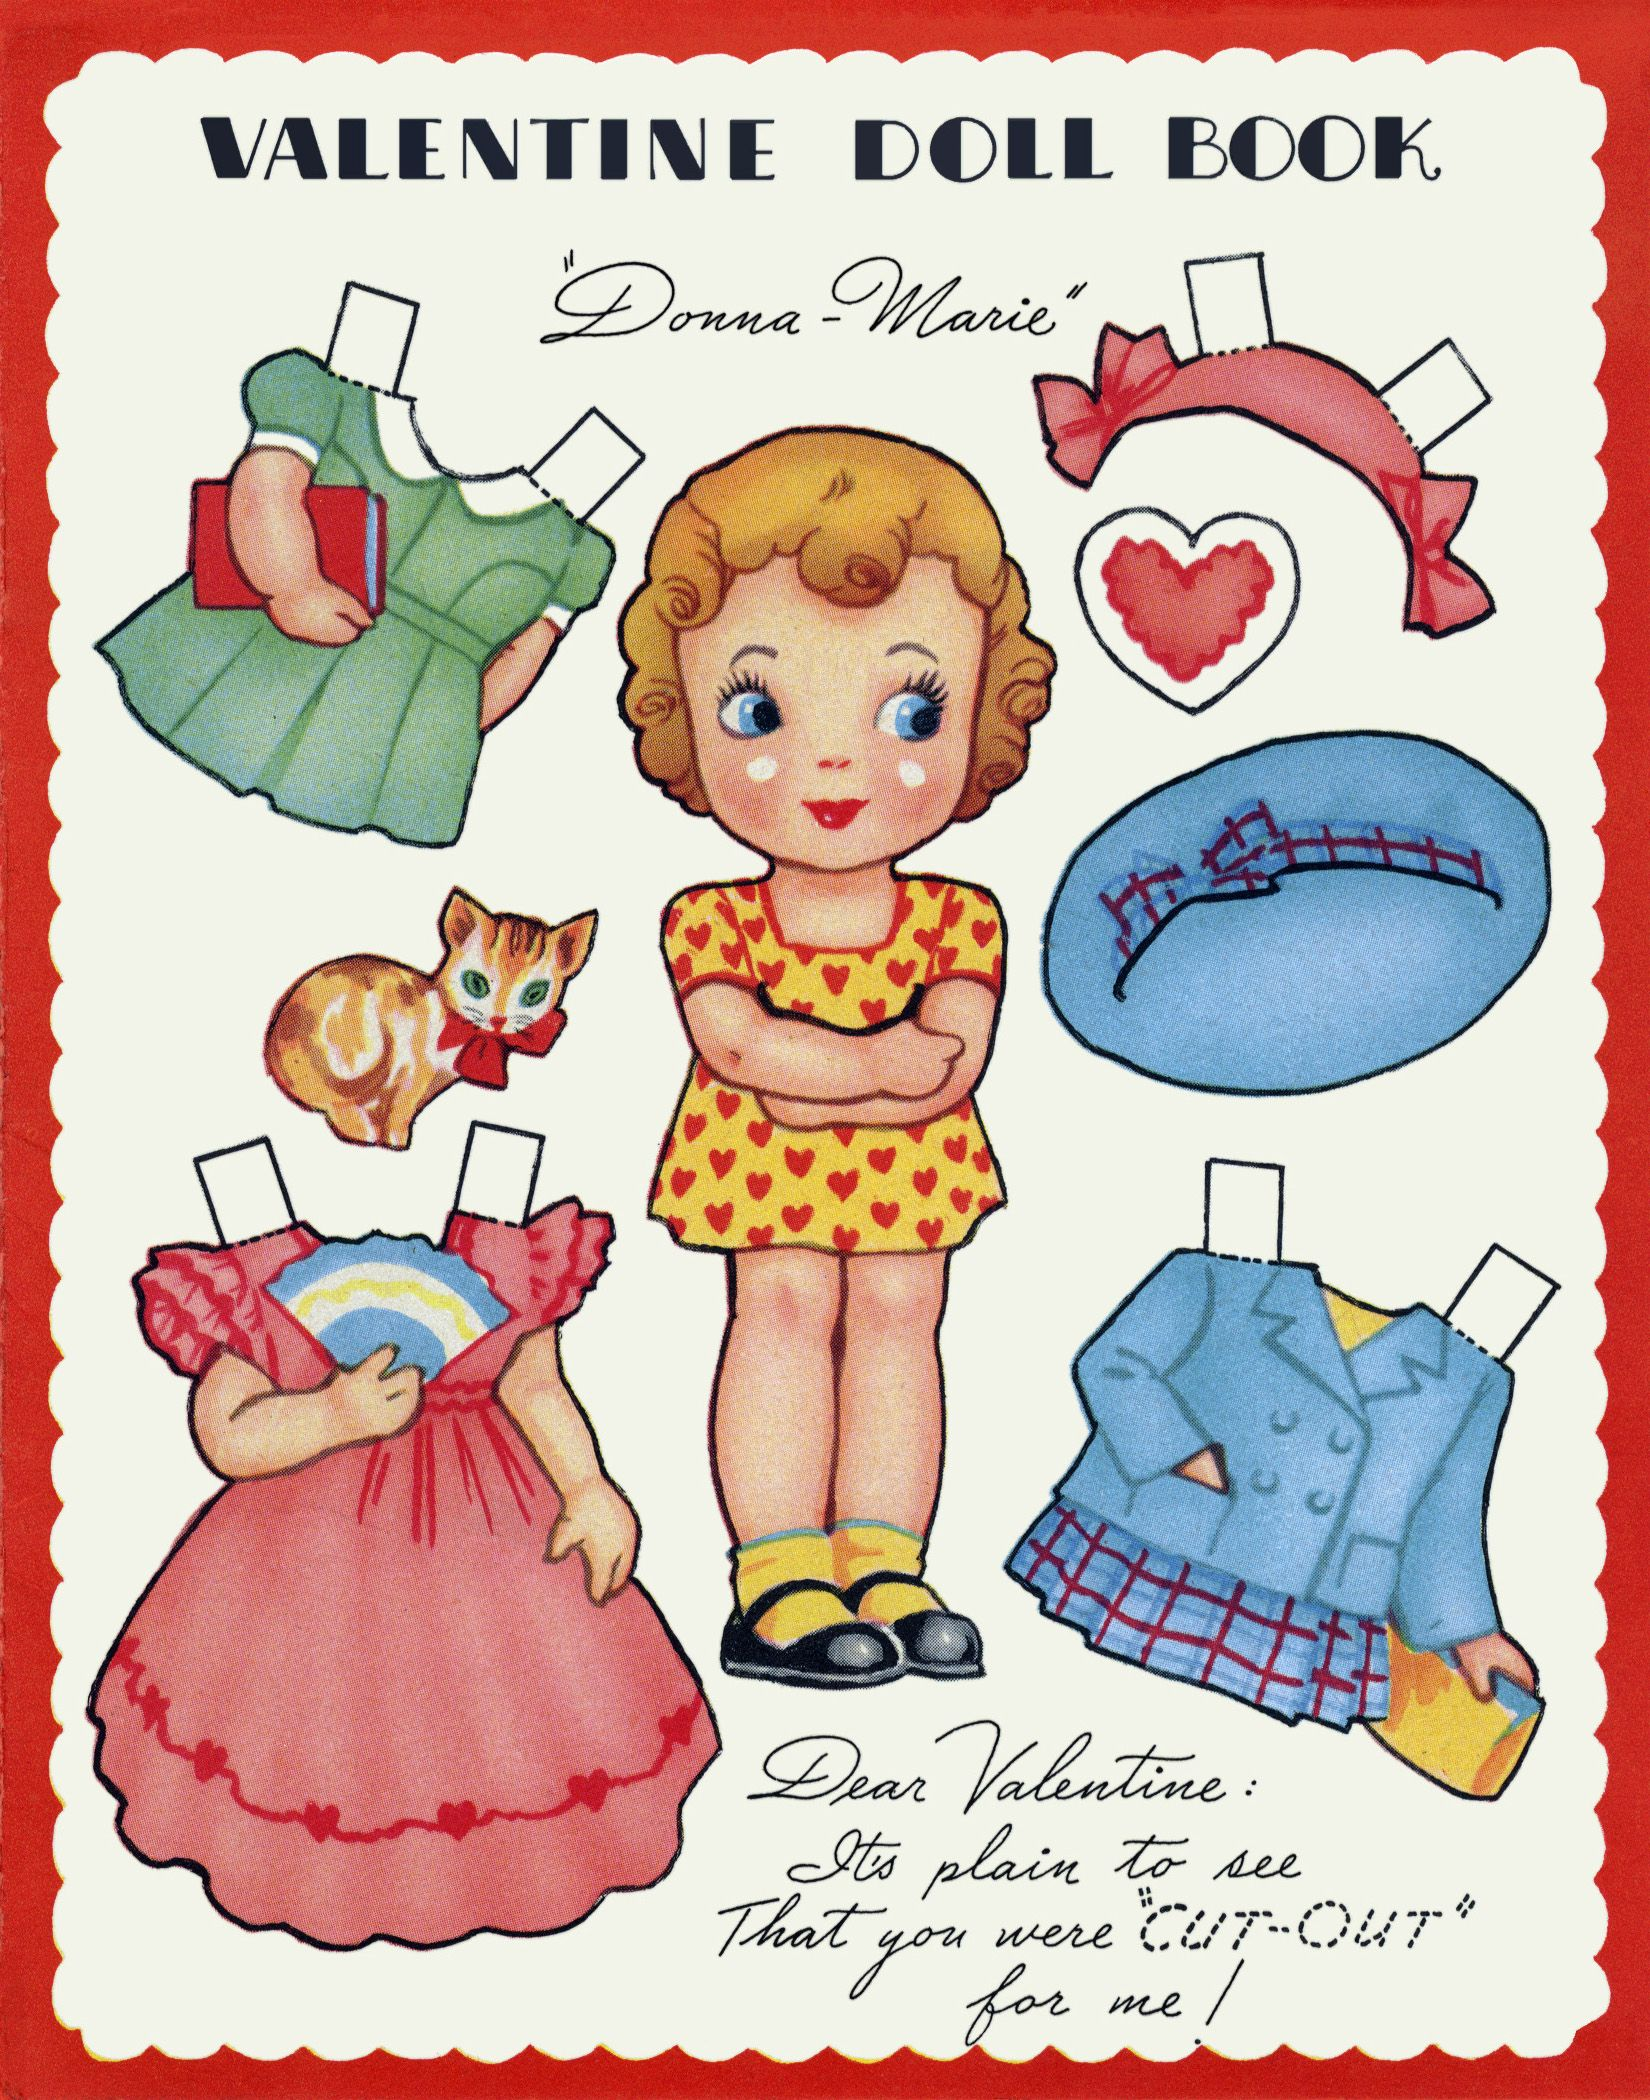 Reminds Me Of The Greeting Cards With Paper Dolls That Great Grandma Used To Send Me Paper